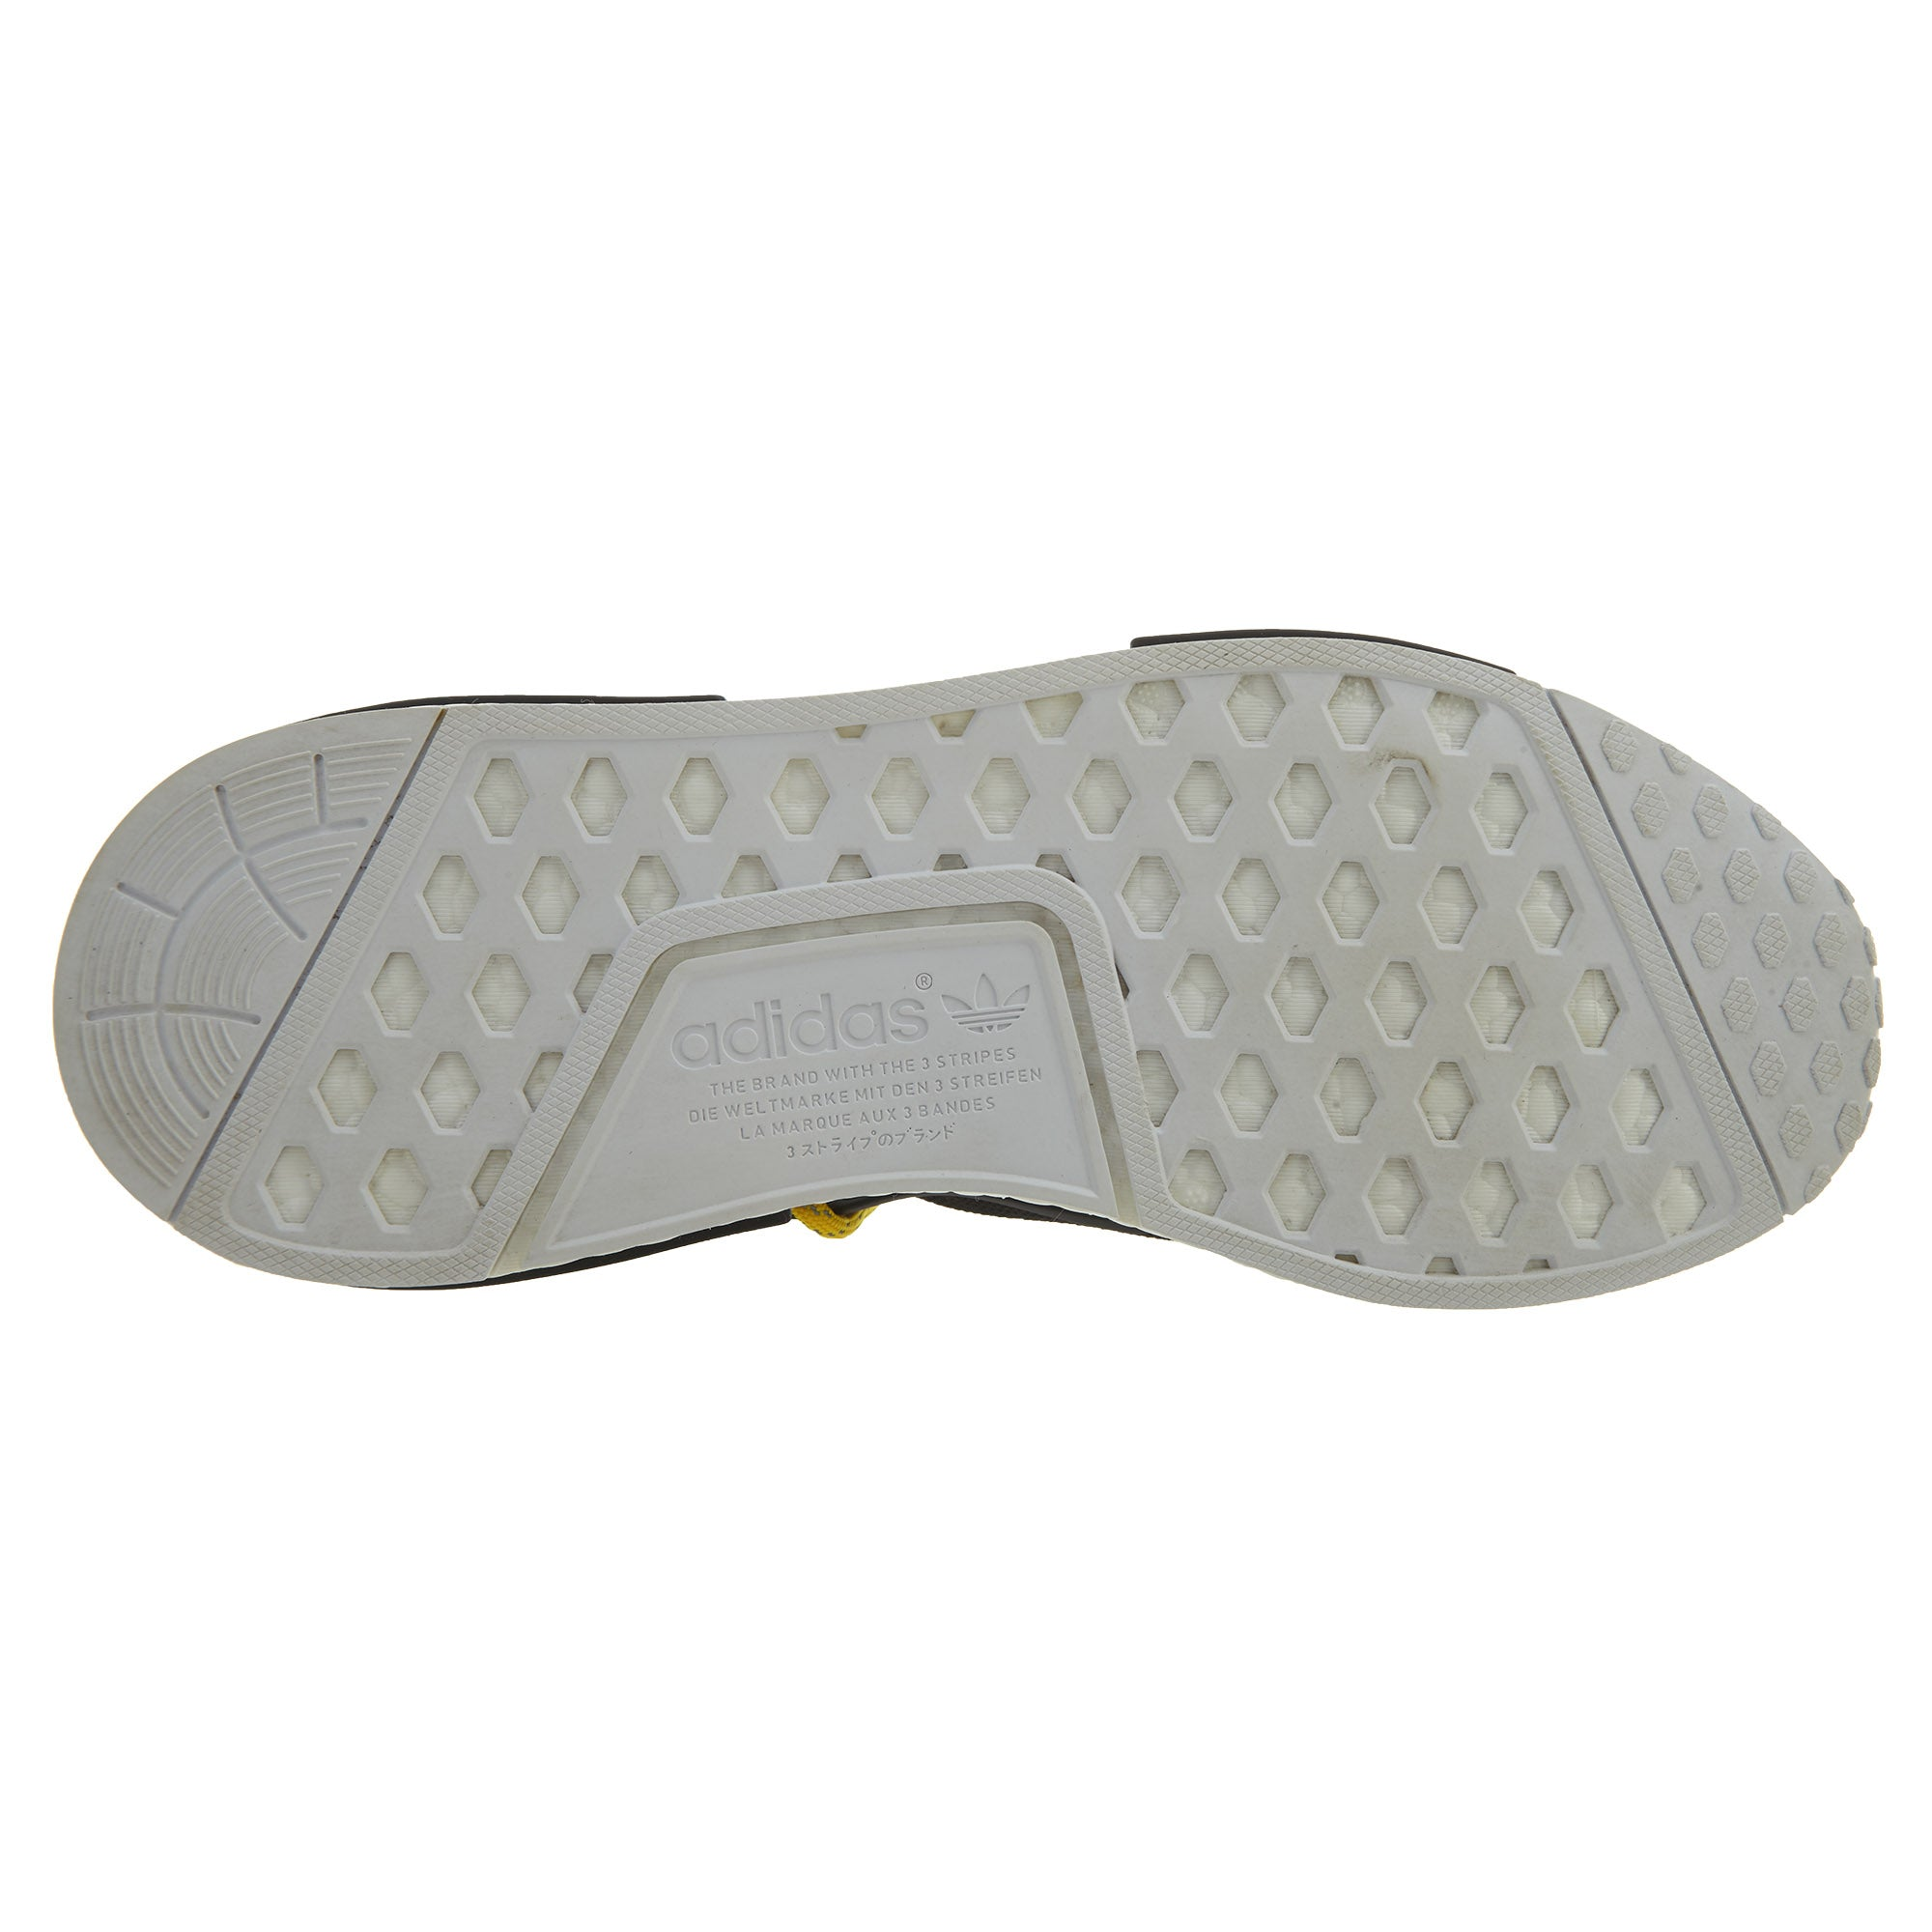 a6d6873669062 Adidas Pw Human Race Nmd Mens Style   Bb3068 – TheEagleShoes